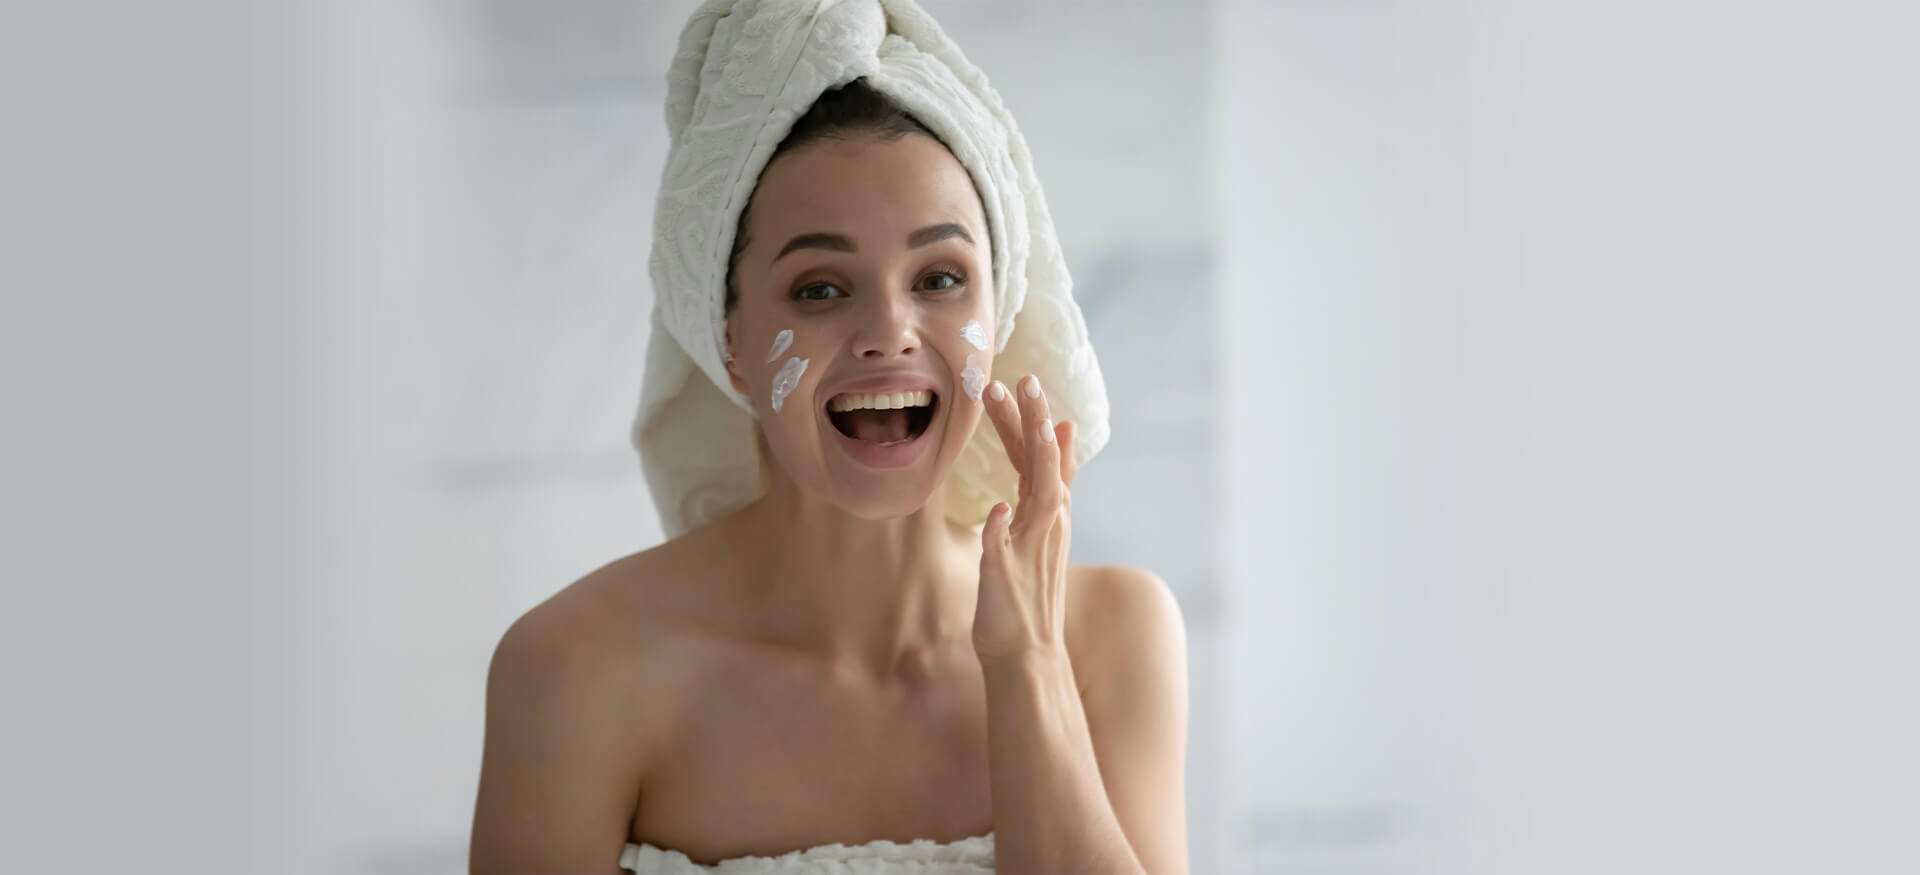 Your Guide to The Cleansing - Exfoliation - Moisturizing (CEM) Routine